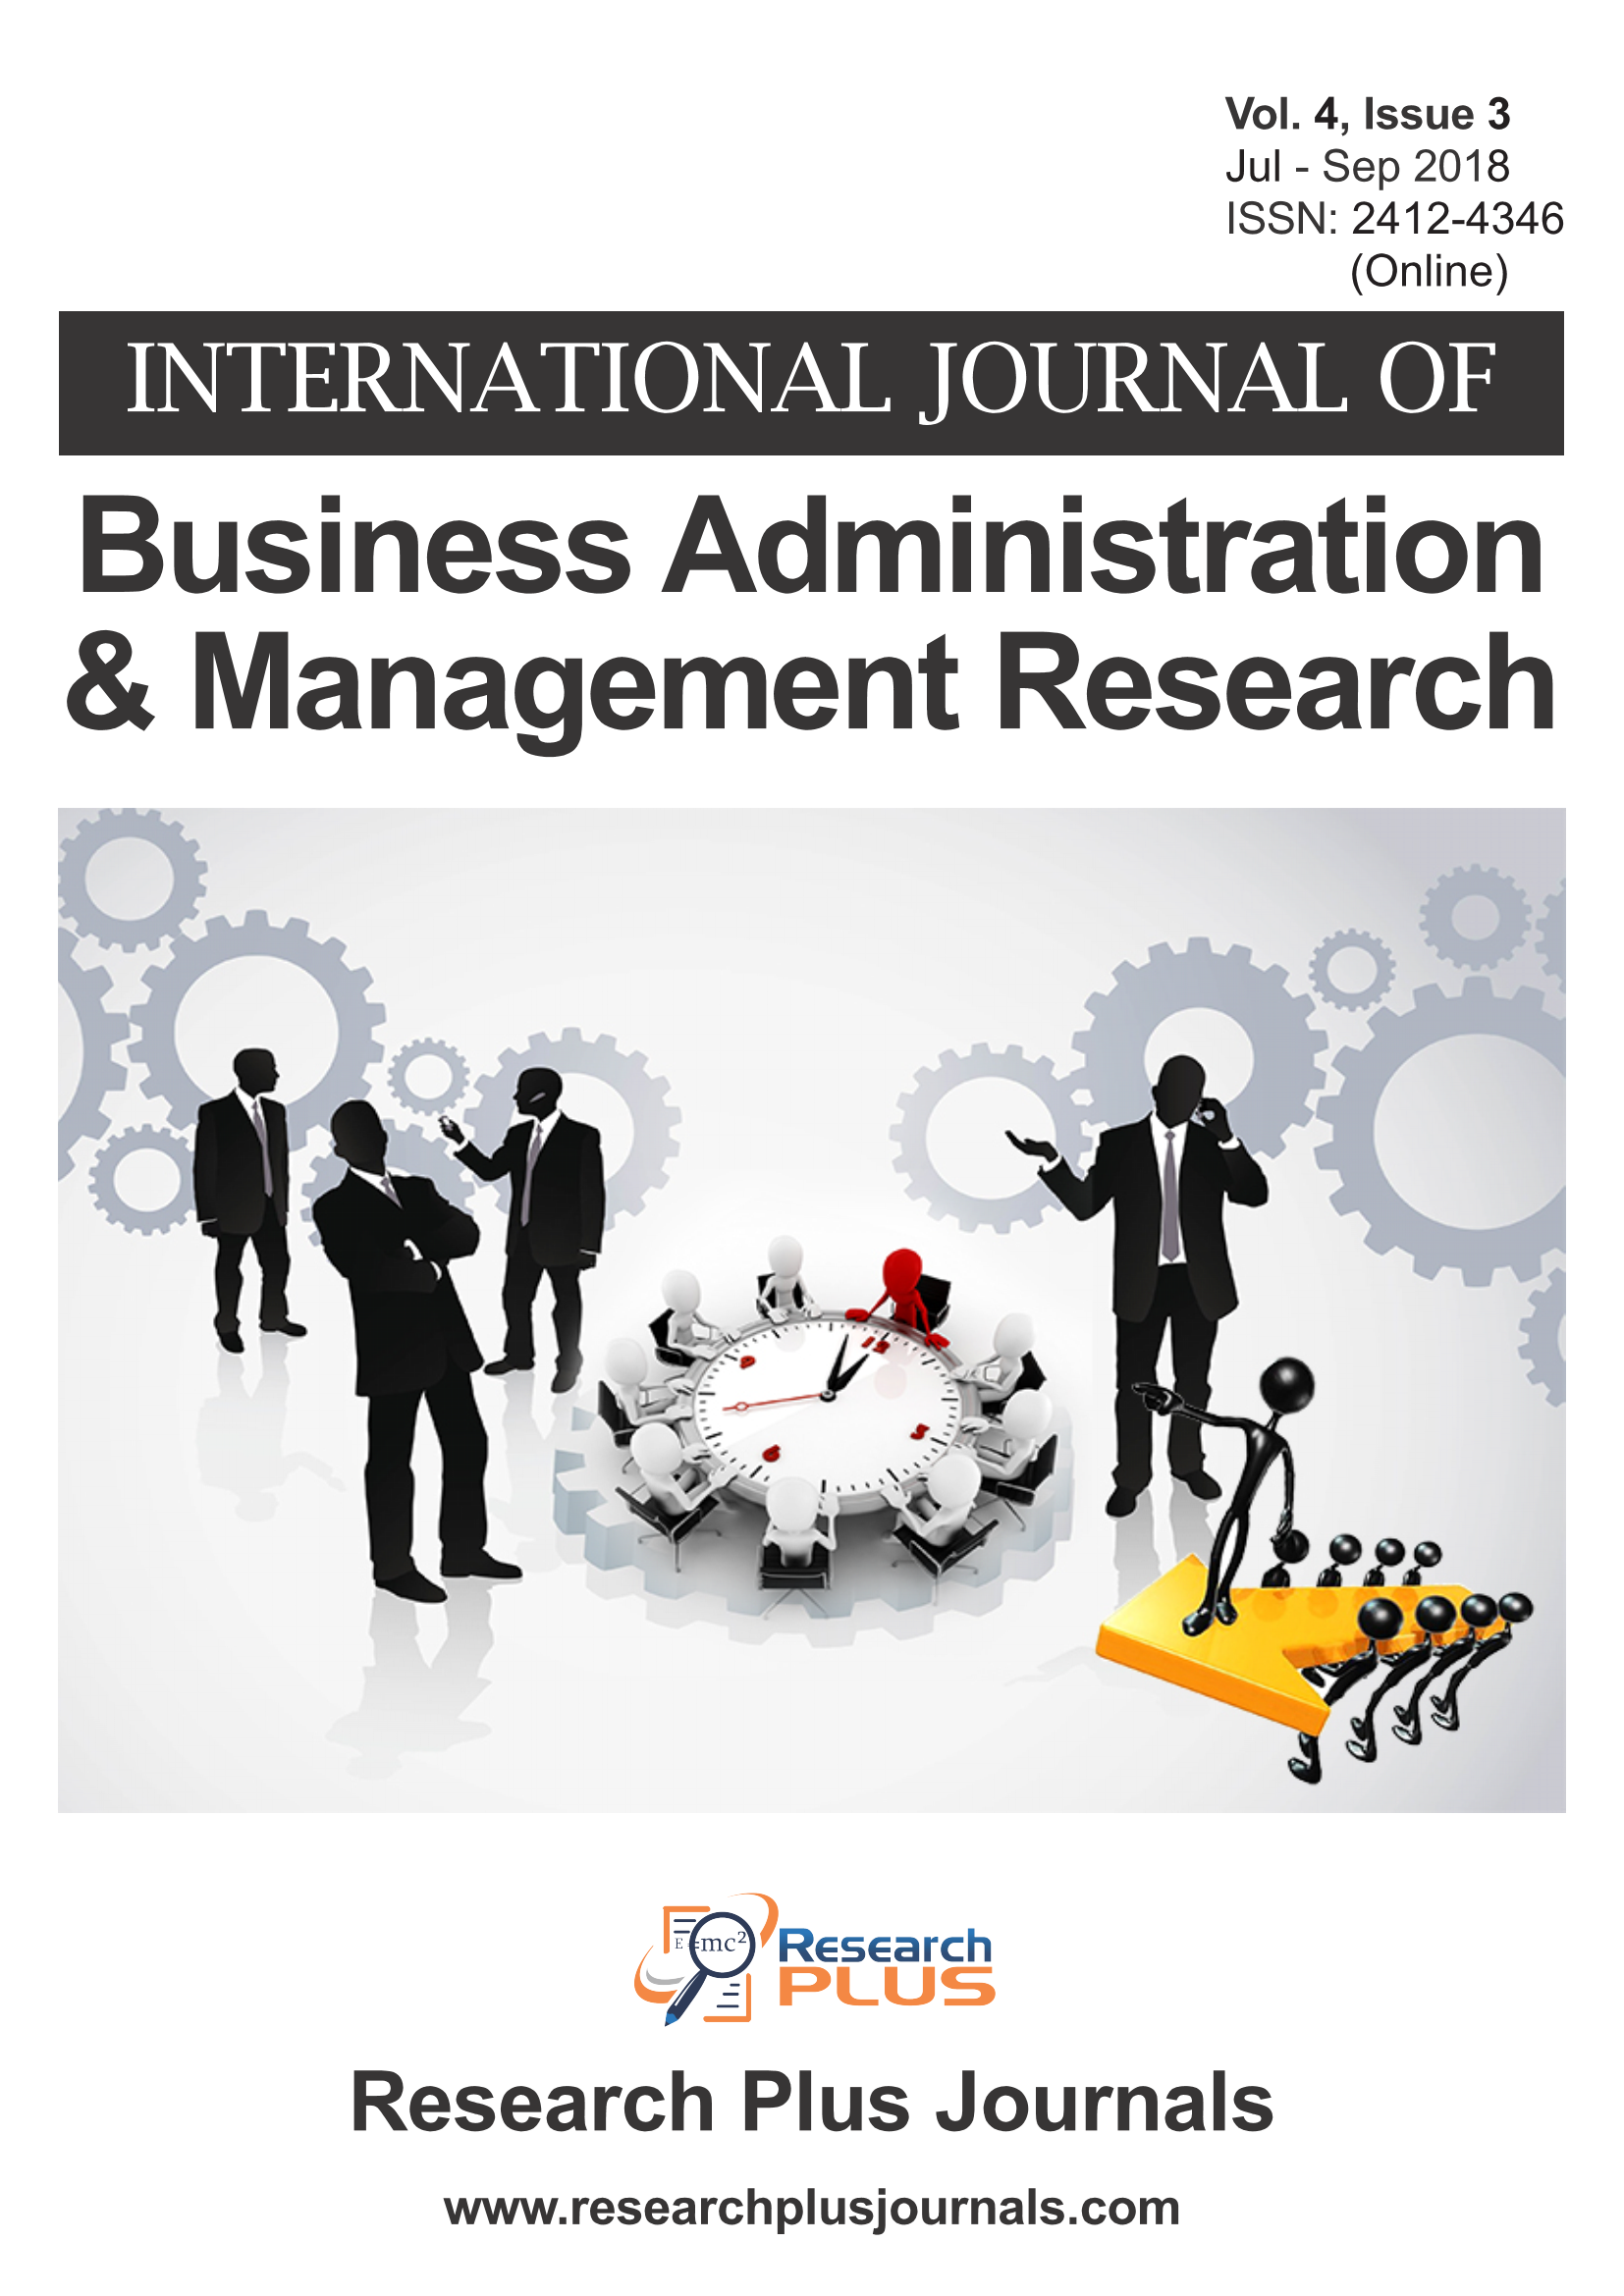 Volume 4, Issue 3, International Journal of Business Administration and Management Research (IJBAMR) (Online ISSN: 2412-4346)